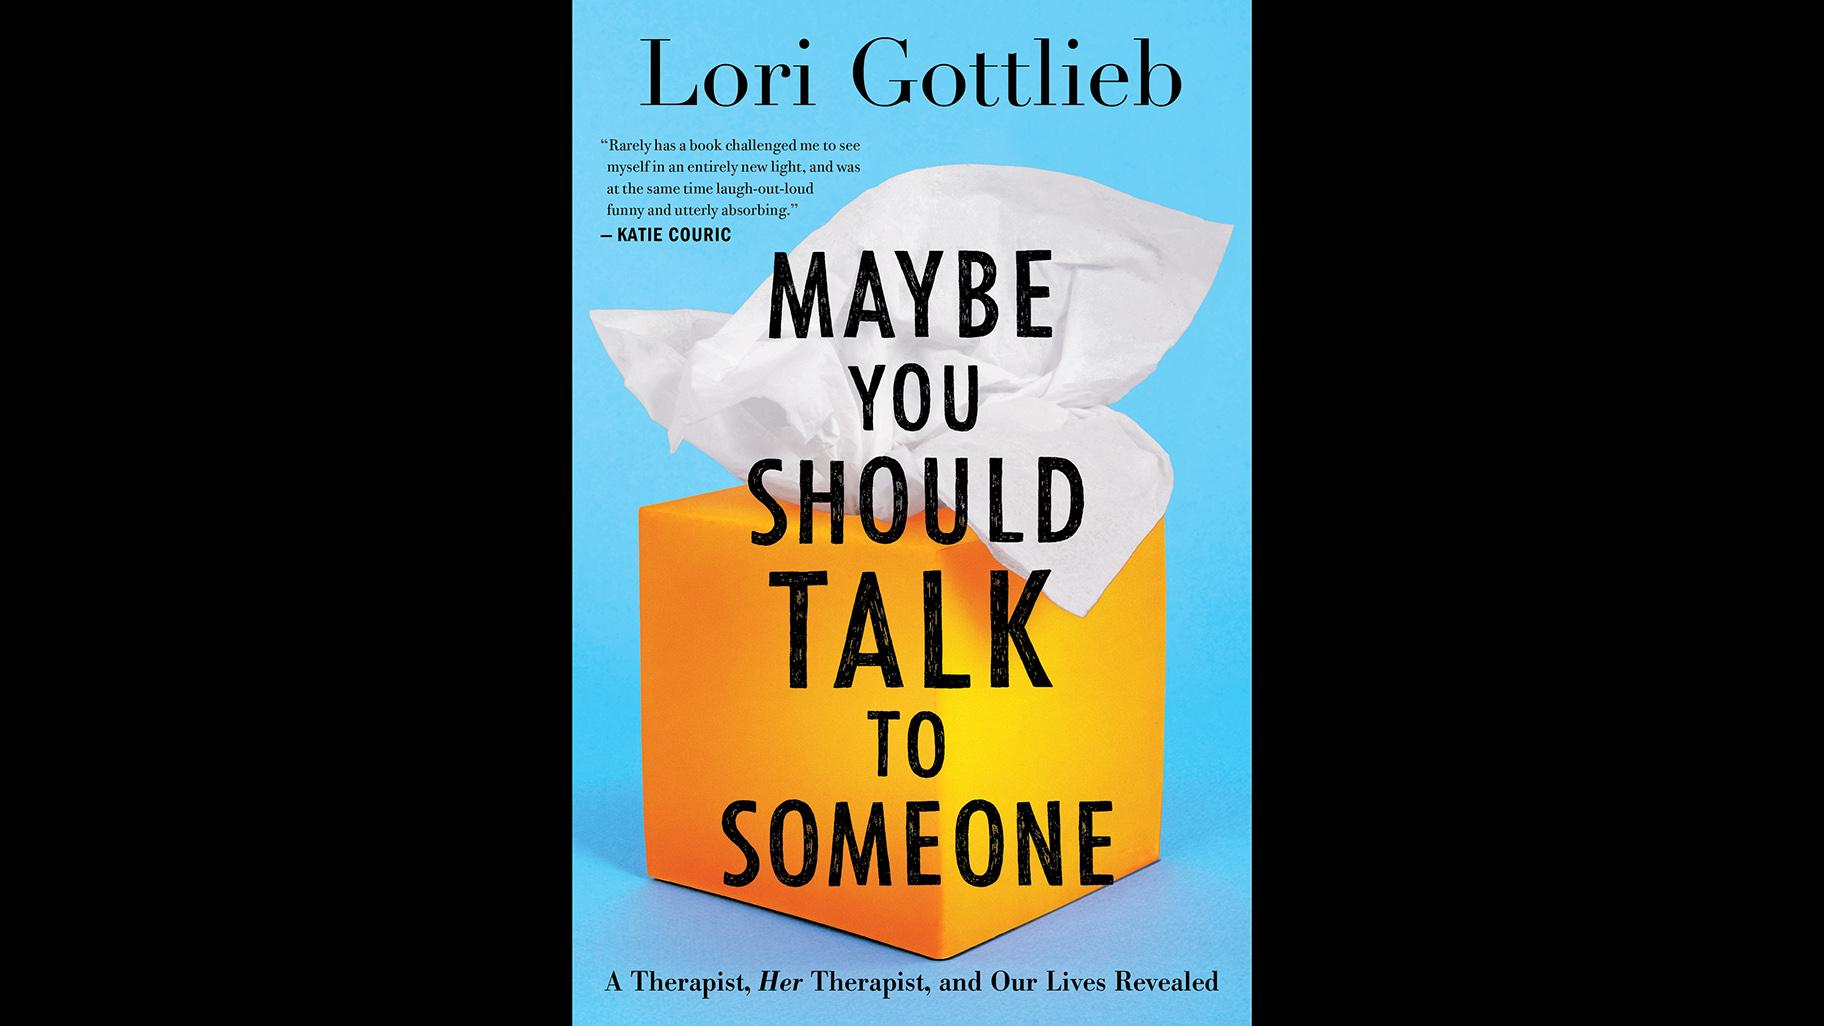 Excerpted from MAYBE YOU SHOULD TALK TO SOMEONE: A Therapist, Her Therapist, and Our Lives Revealed by Lori Gottlieb. Copyright © 2019 by Lori Gottlieb. Published and reprinted by permission of Houghton Mifflin Harcourt. All rights reserved.